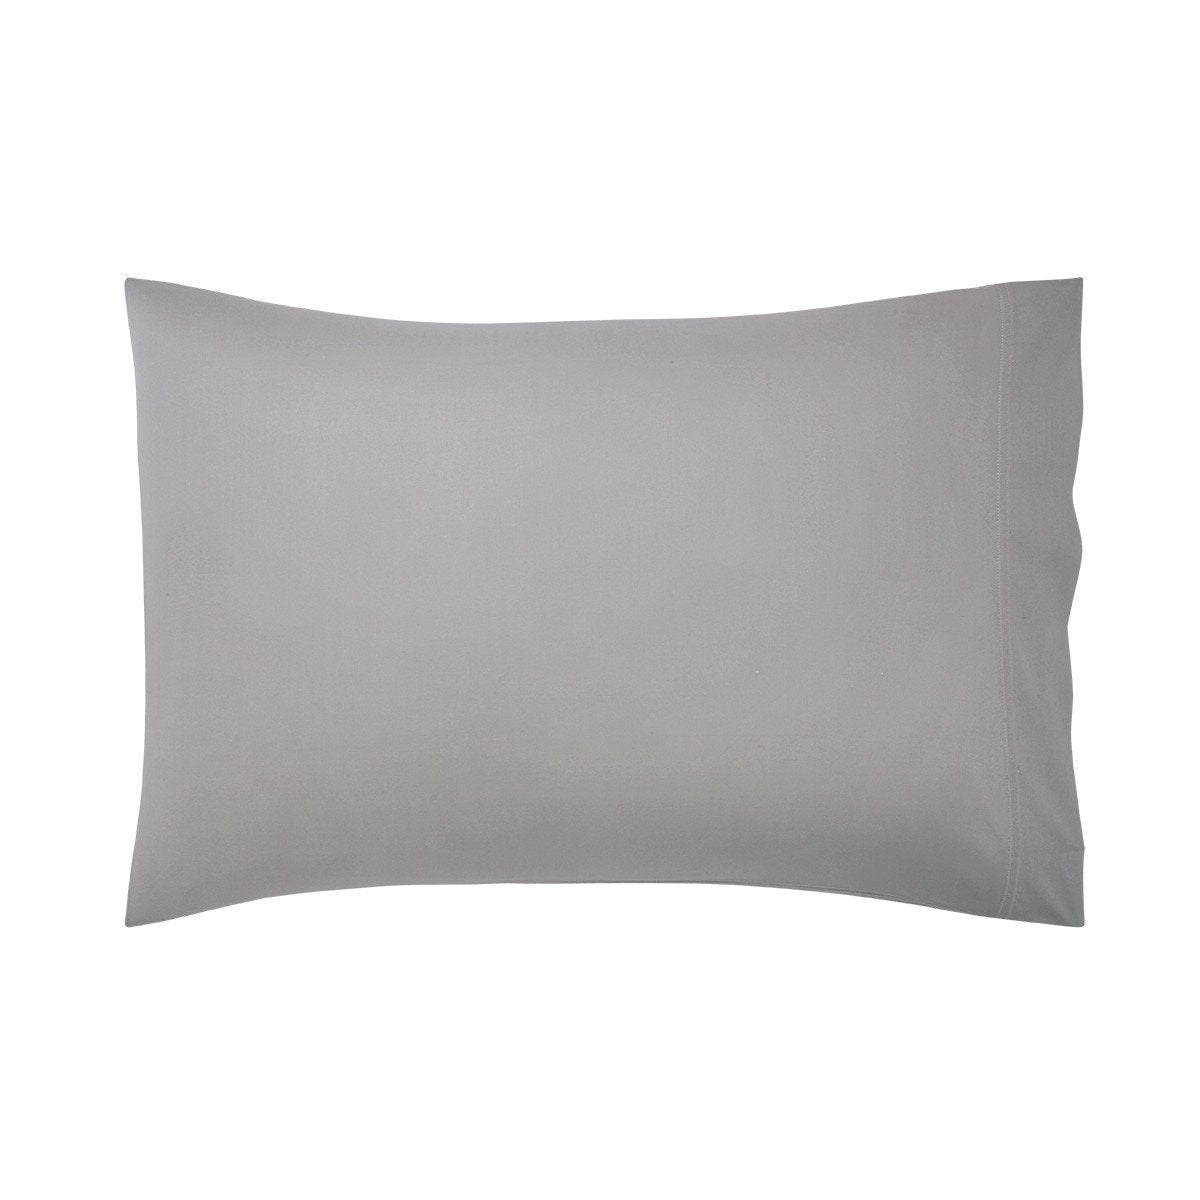 Triomphe Platine King Pillowcase